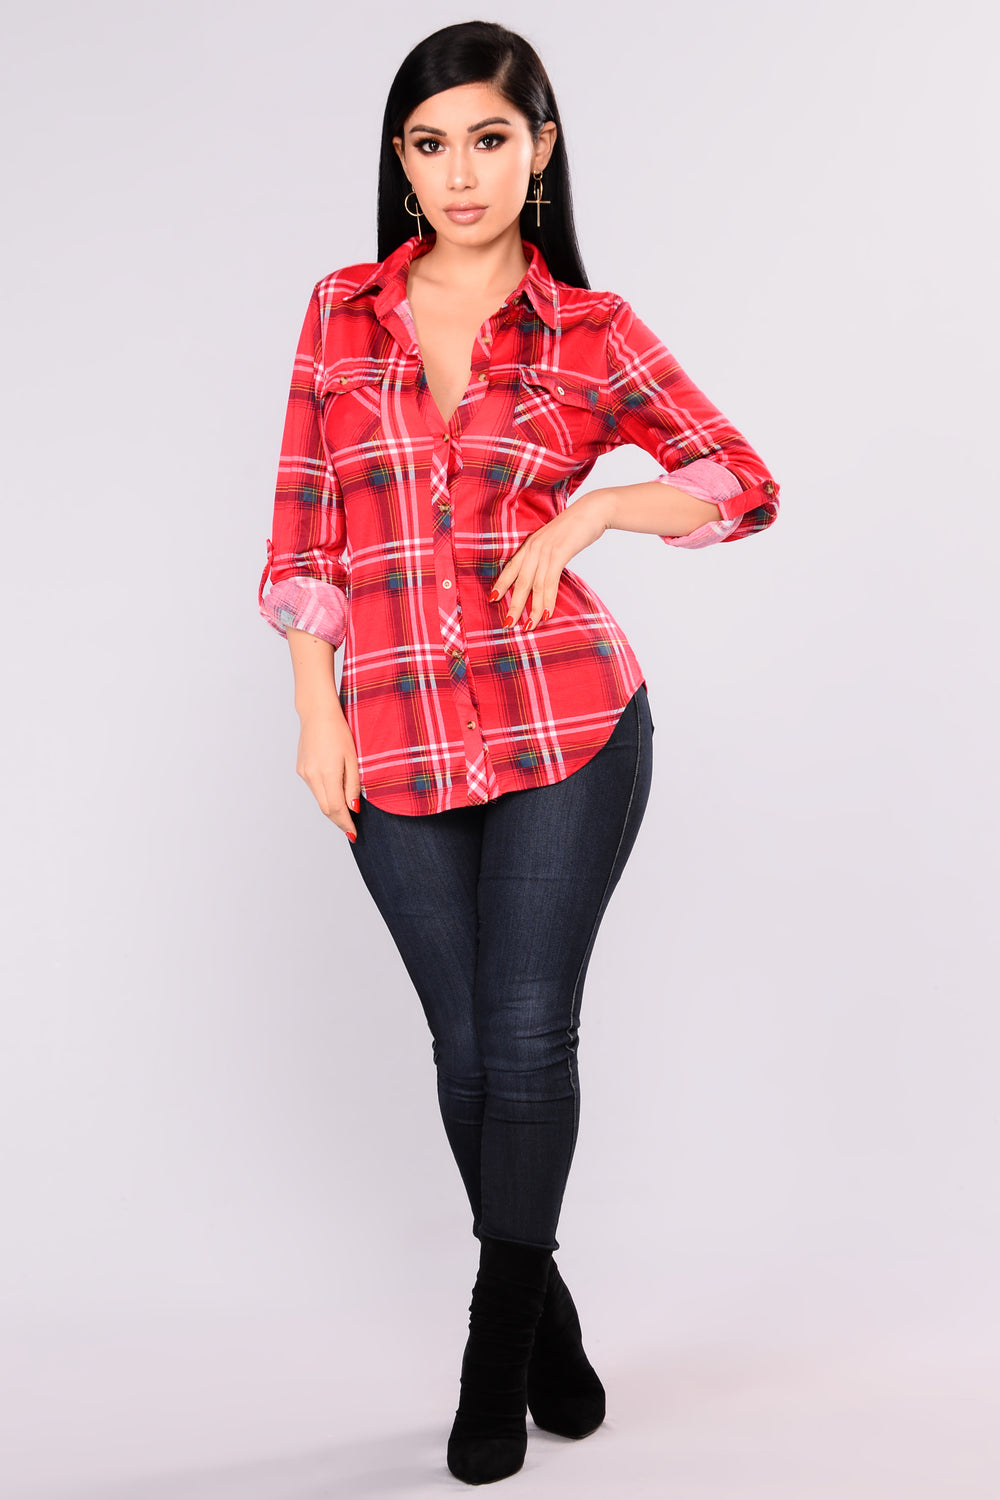 Soul Mate Plaid Top - Red/Navy